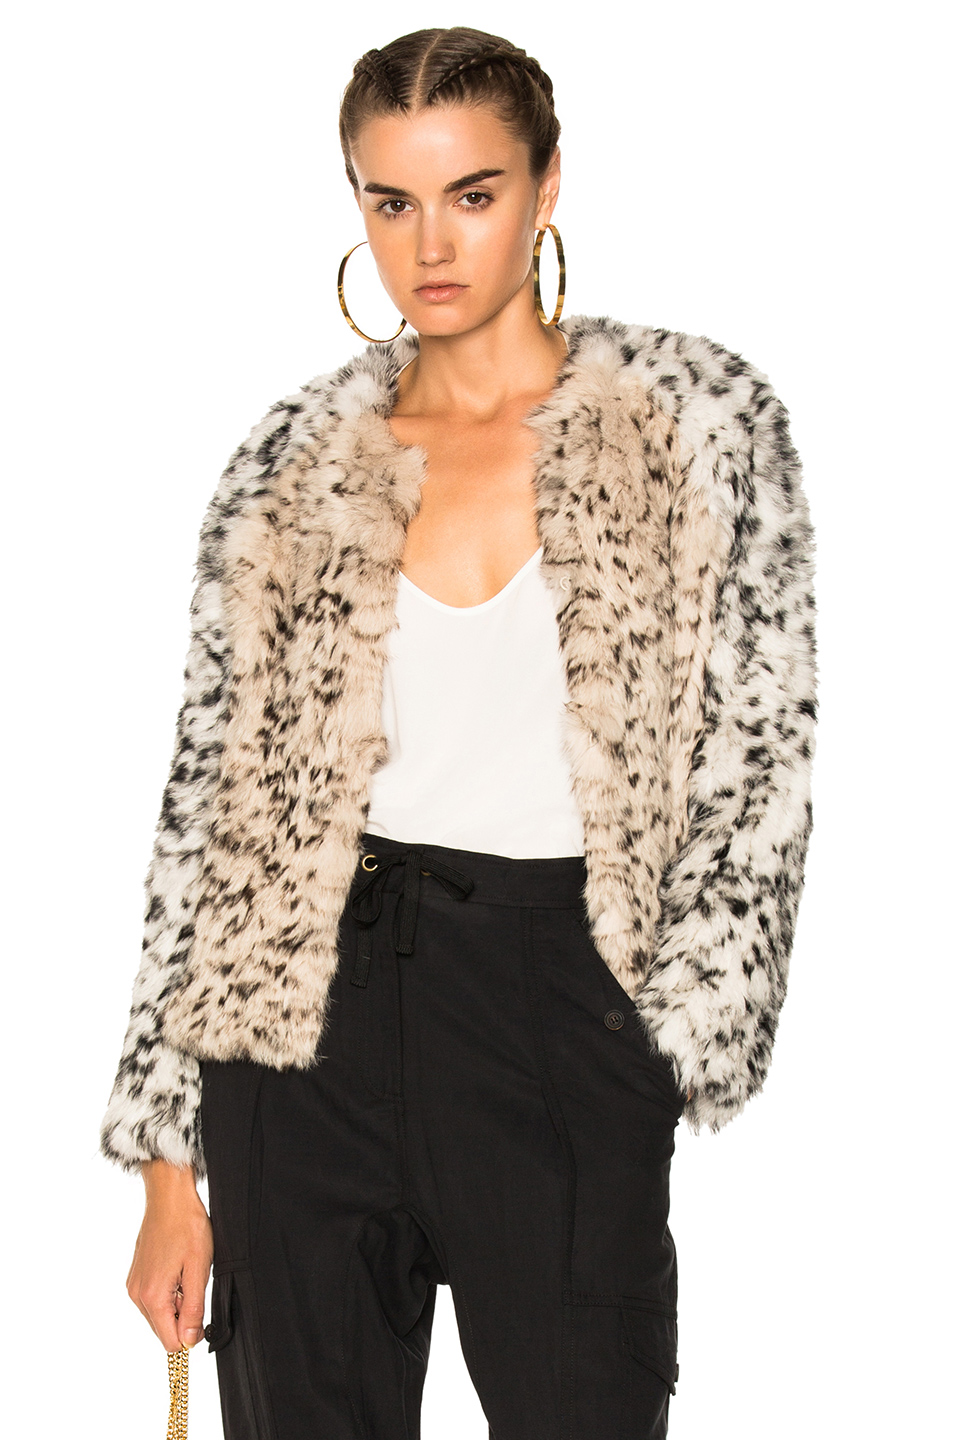 Ulla Johnson Iris Cardigan Jacket in Animal Print,Neutrals